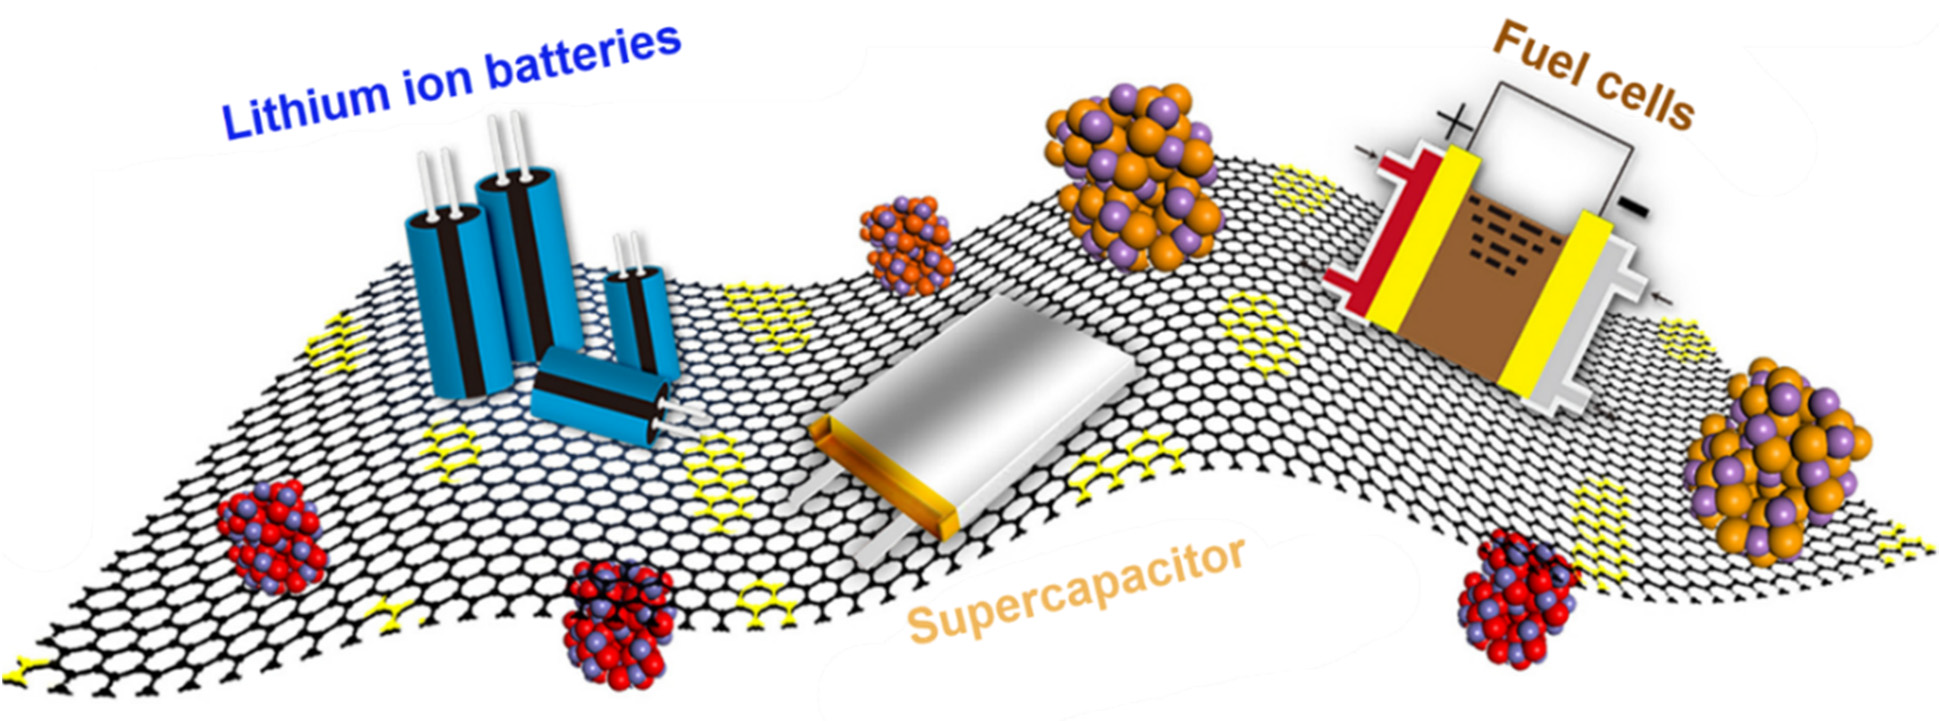 A Review on the Production Methods and Applications of Graphene-Based Materials